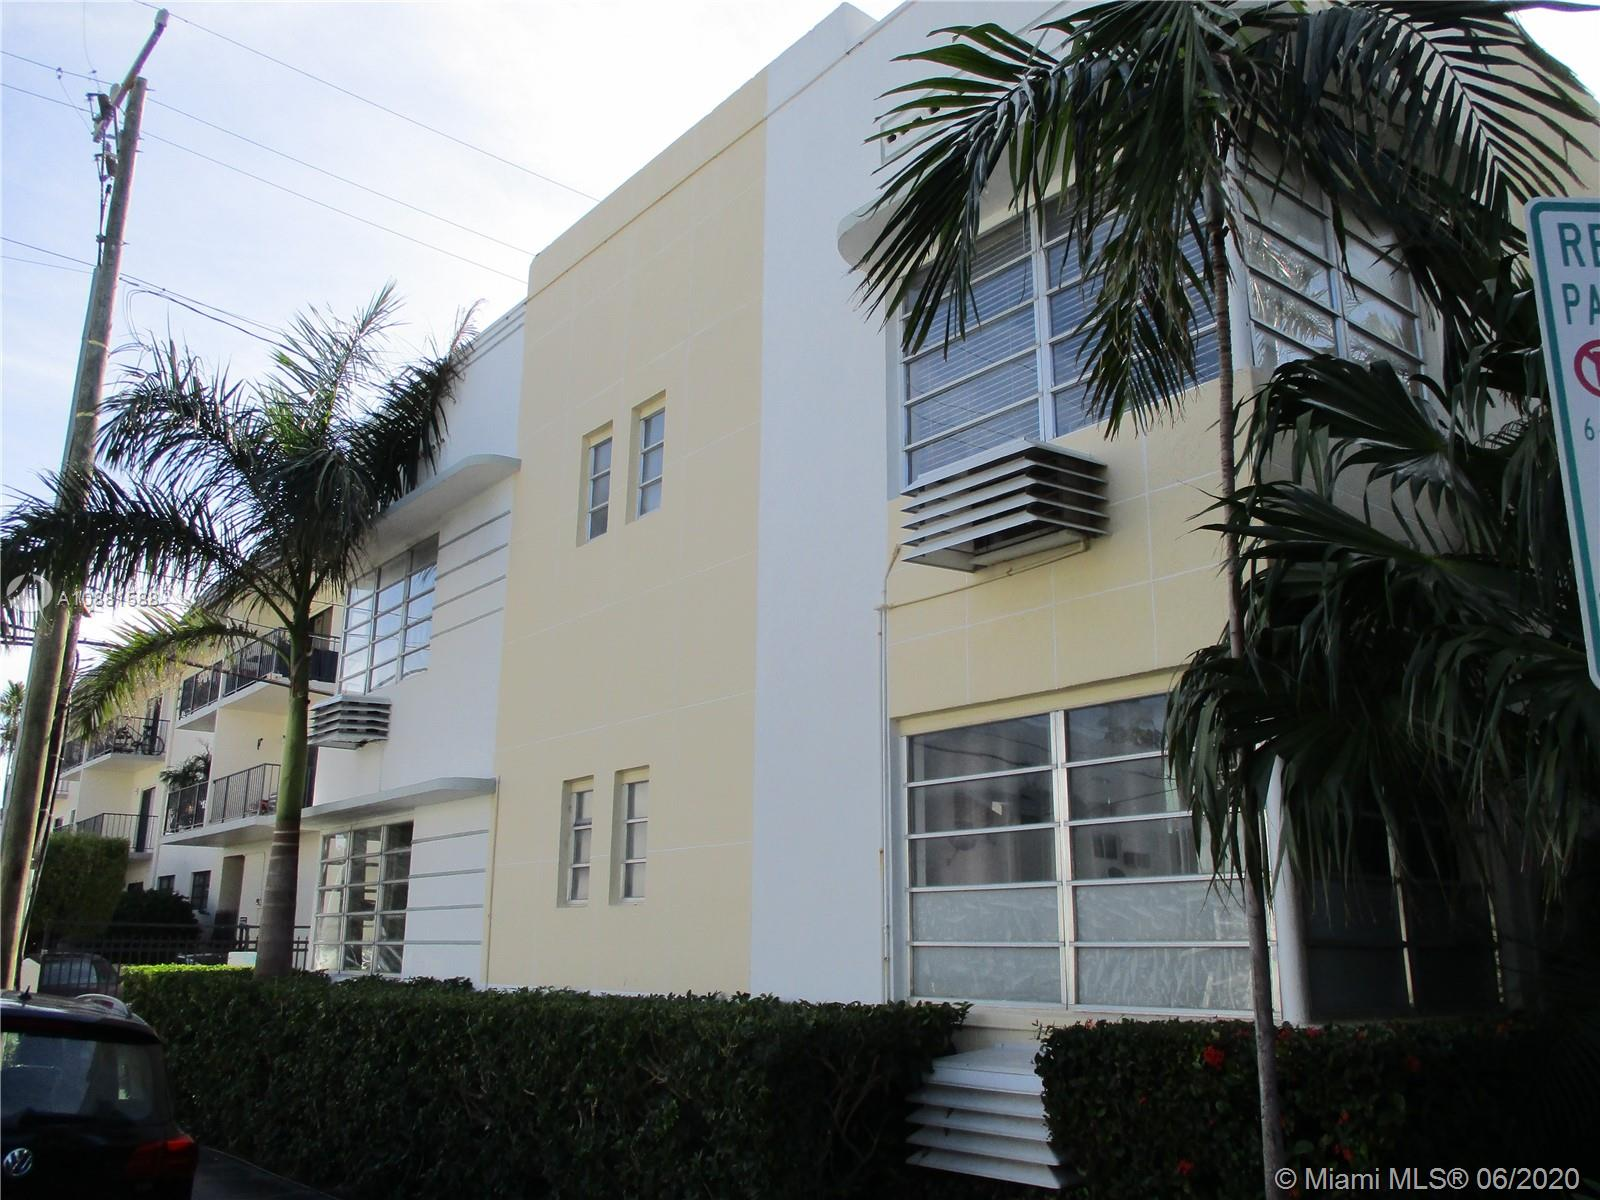 Cute 2/2 in the heart of South Beach, oak floors, newer bathrooms, laundry facilities, beautiful gardens at the entrance and a beautiful yard to sit and eat or barBQ bike racks well kept community. Walk to the Beach, Lincoln Road, Flamingo Park, Restaurants, Shopping, Transportation, Schools and Houses of Worship. Unit needs a little TLC Low Maint. Fees  Easy to show just call the listing agent.